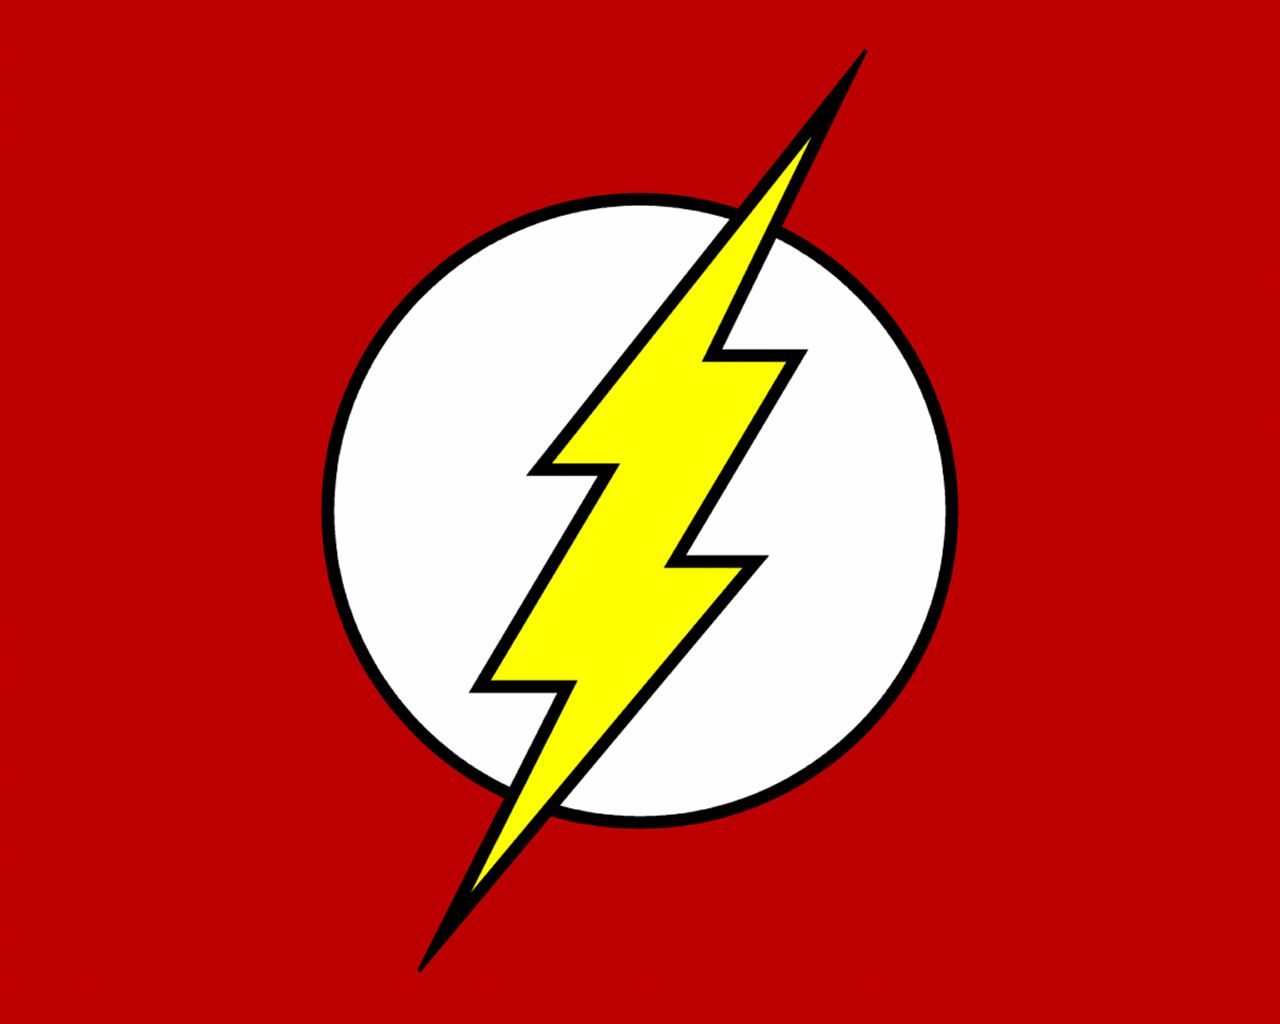 The Flash Symbol Simbolo De Flash Logo De Flash Imagenes De Super Heroes The computer will give you an element and, depending on the selections you how about just the elements with 'strange' chemical symbols? the flash symbol simbolo de flash